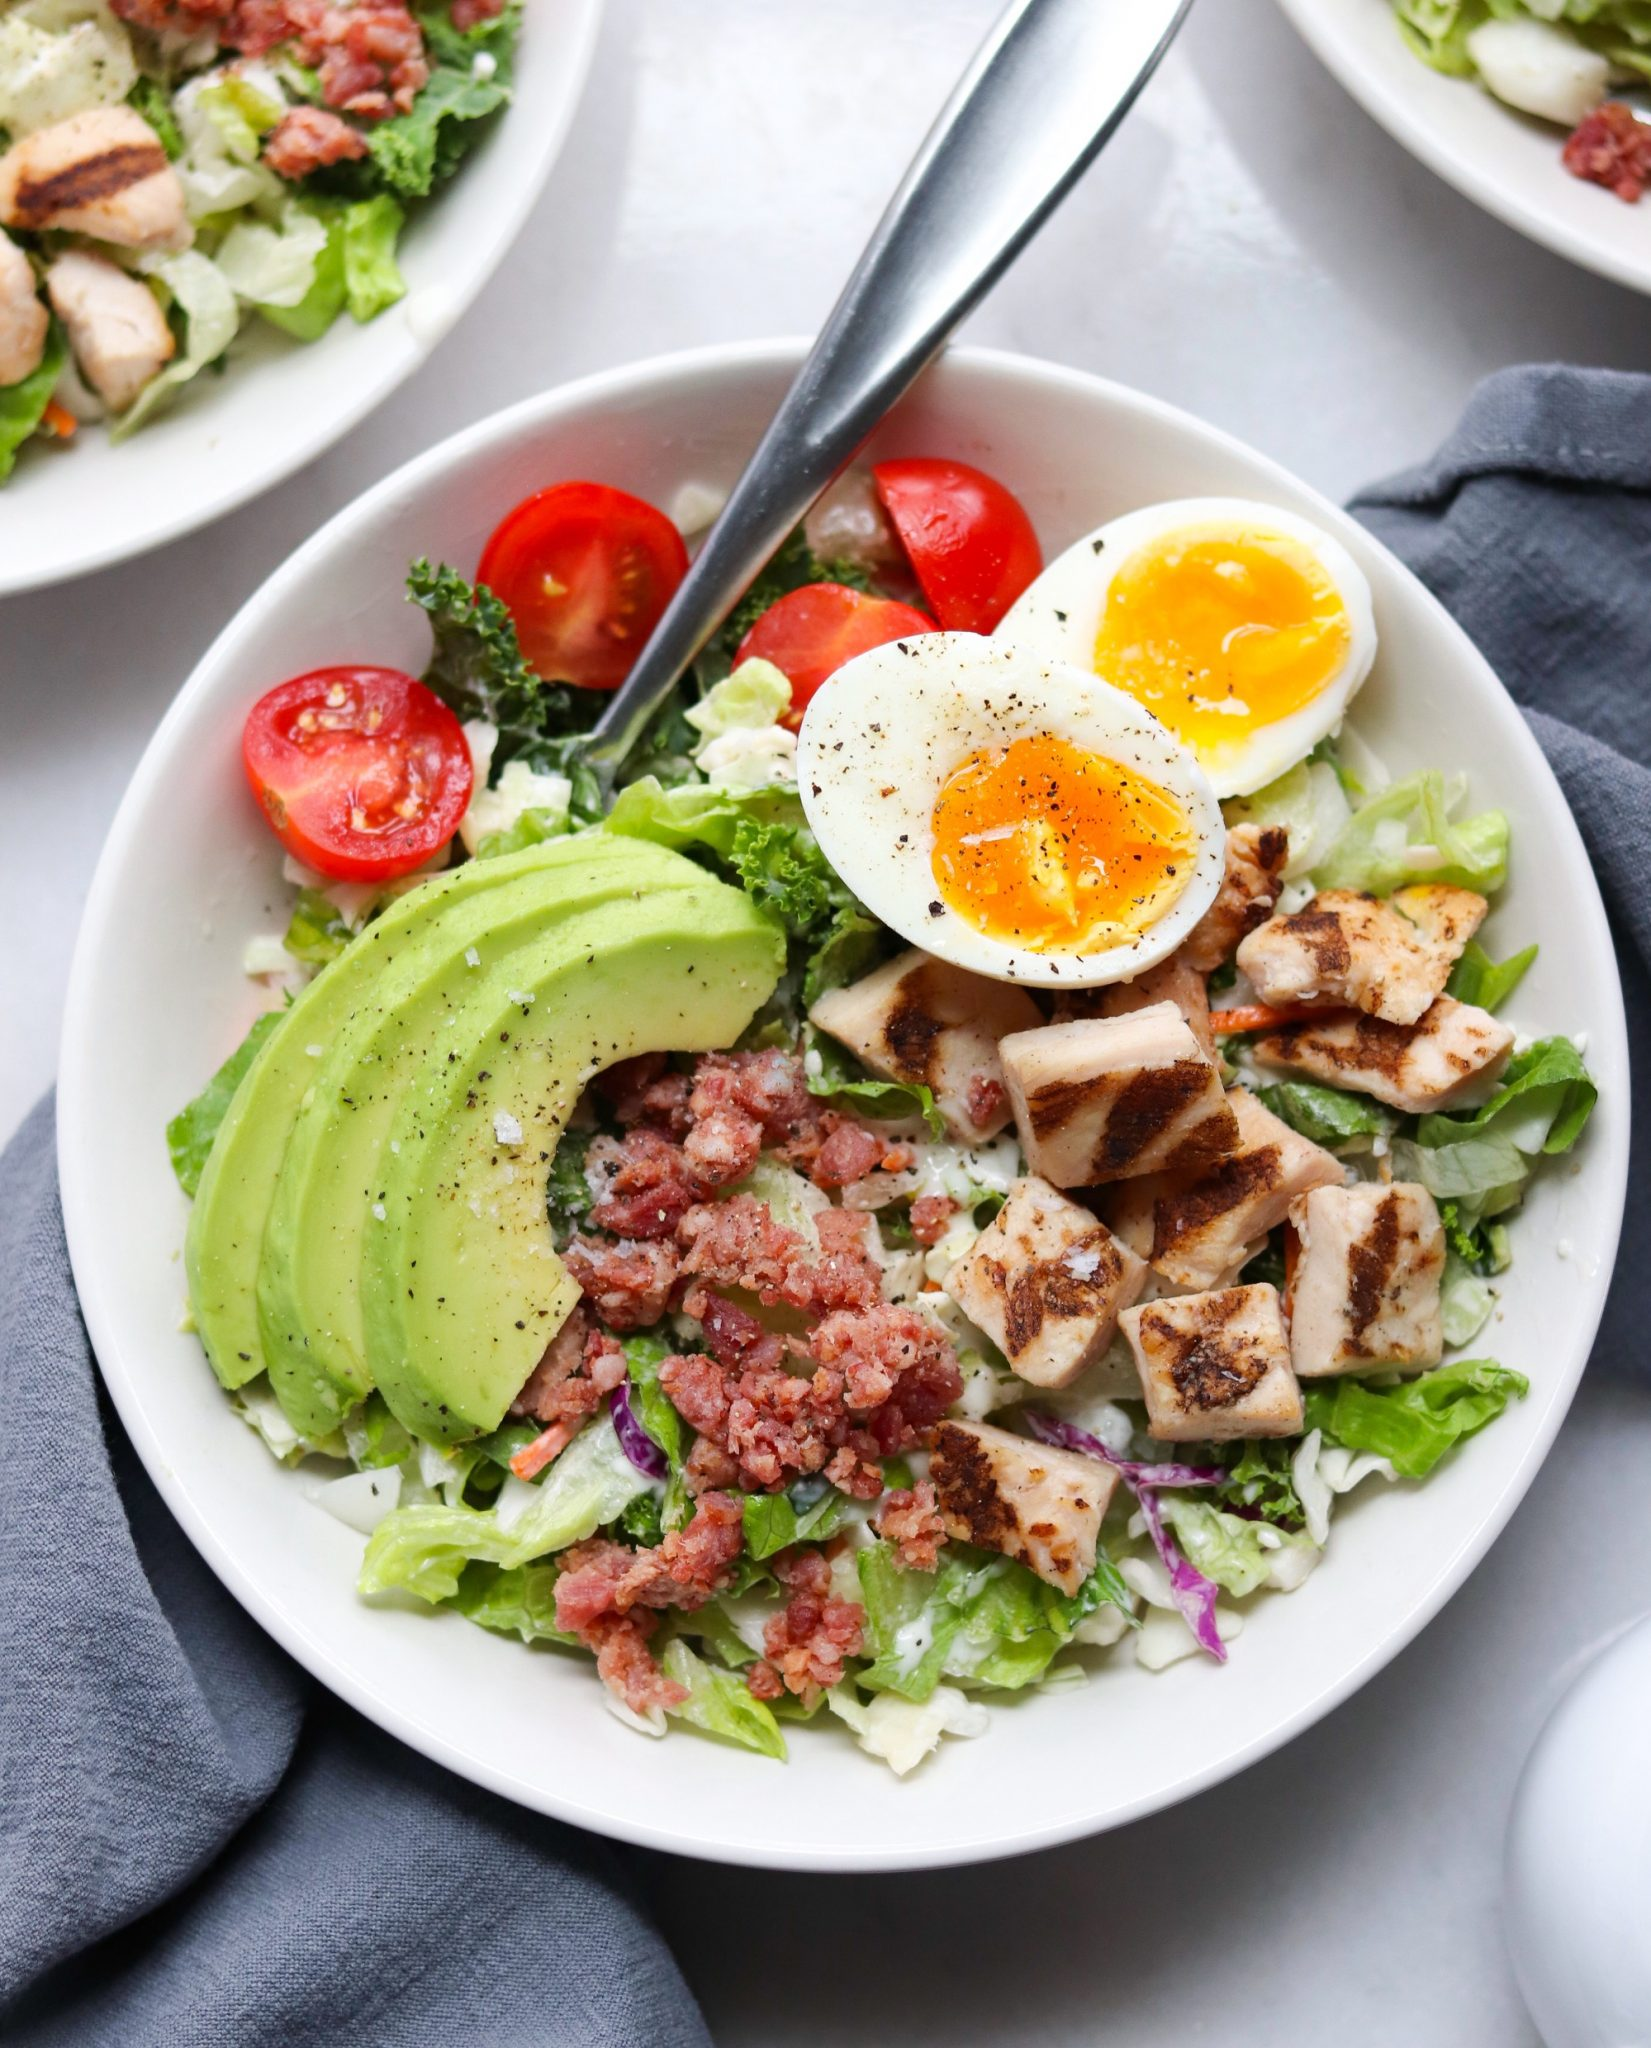 A completed dish with Taylor farms salad kit and added soft boiled eggs, tomatoes and avocado